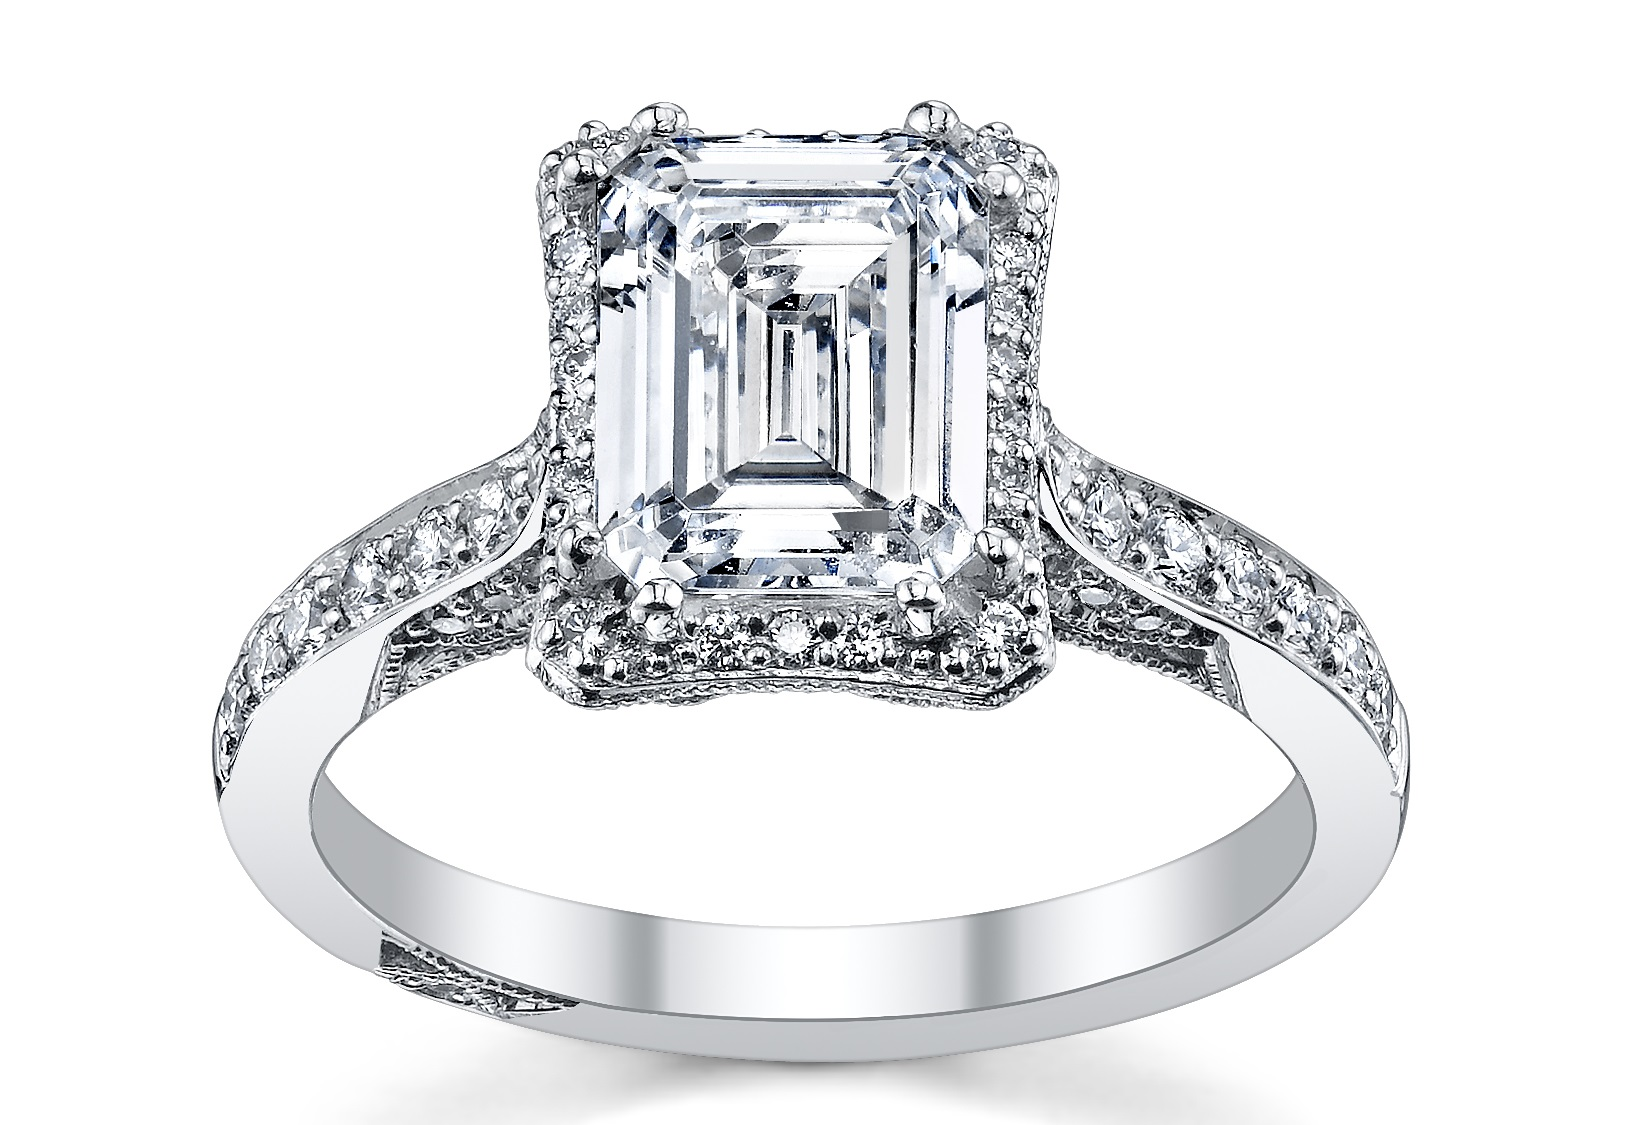 Harry Winston Engagement Ring: How to Pick the Metal Type